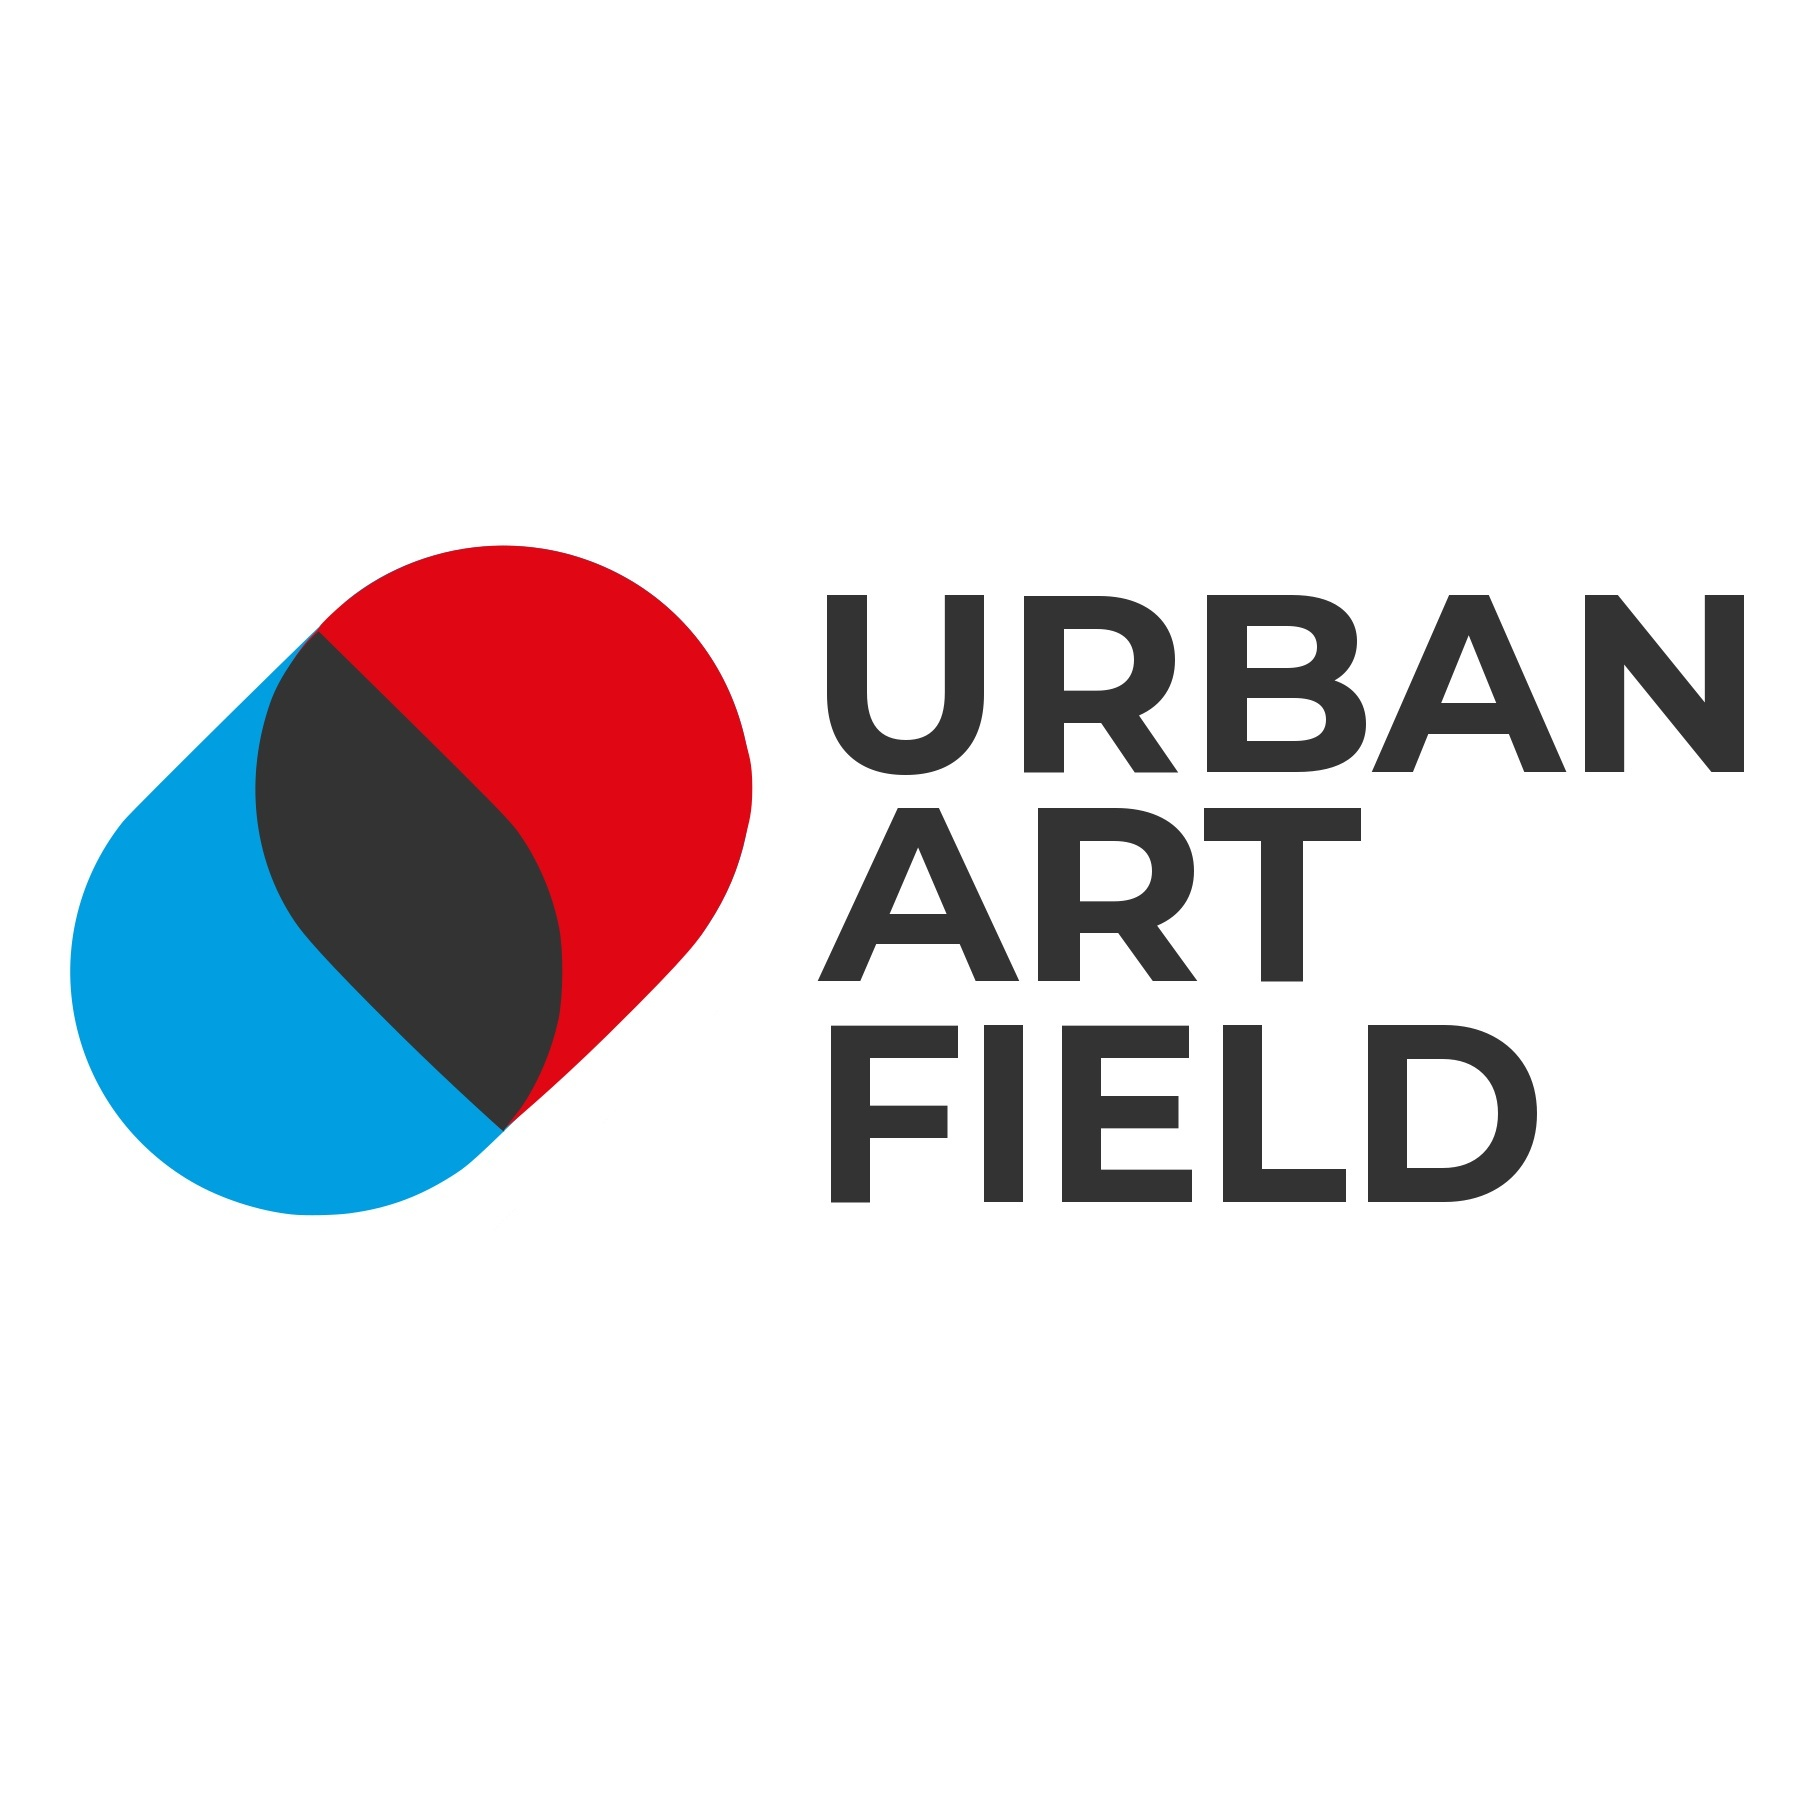 Urban art field